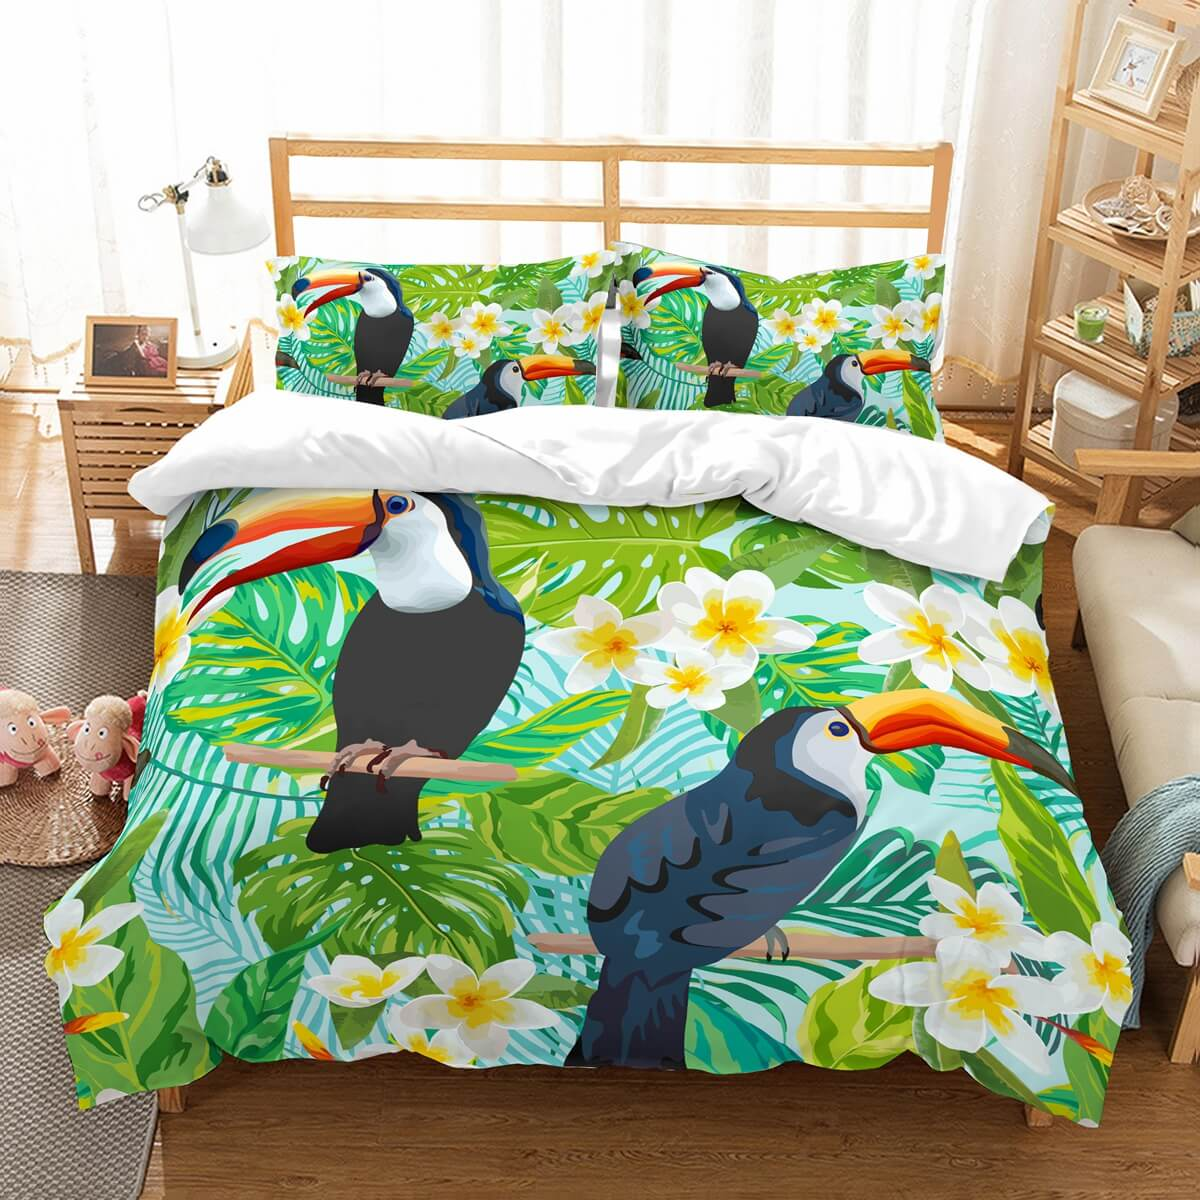 3D Customize Toucan Bedding Set Duvet Cover Set Bedroom Set Bedlinen